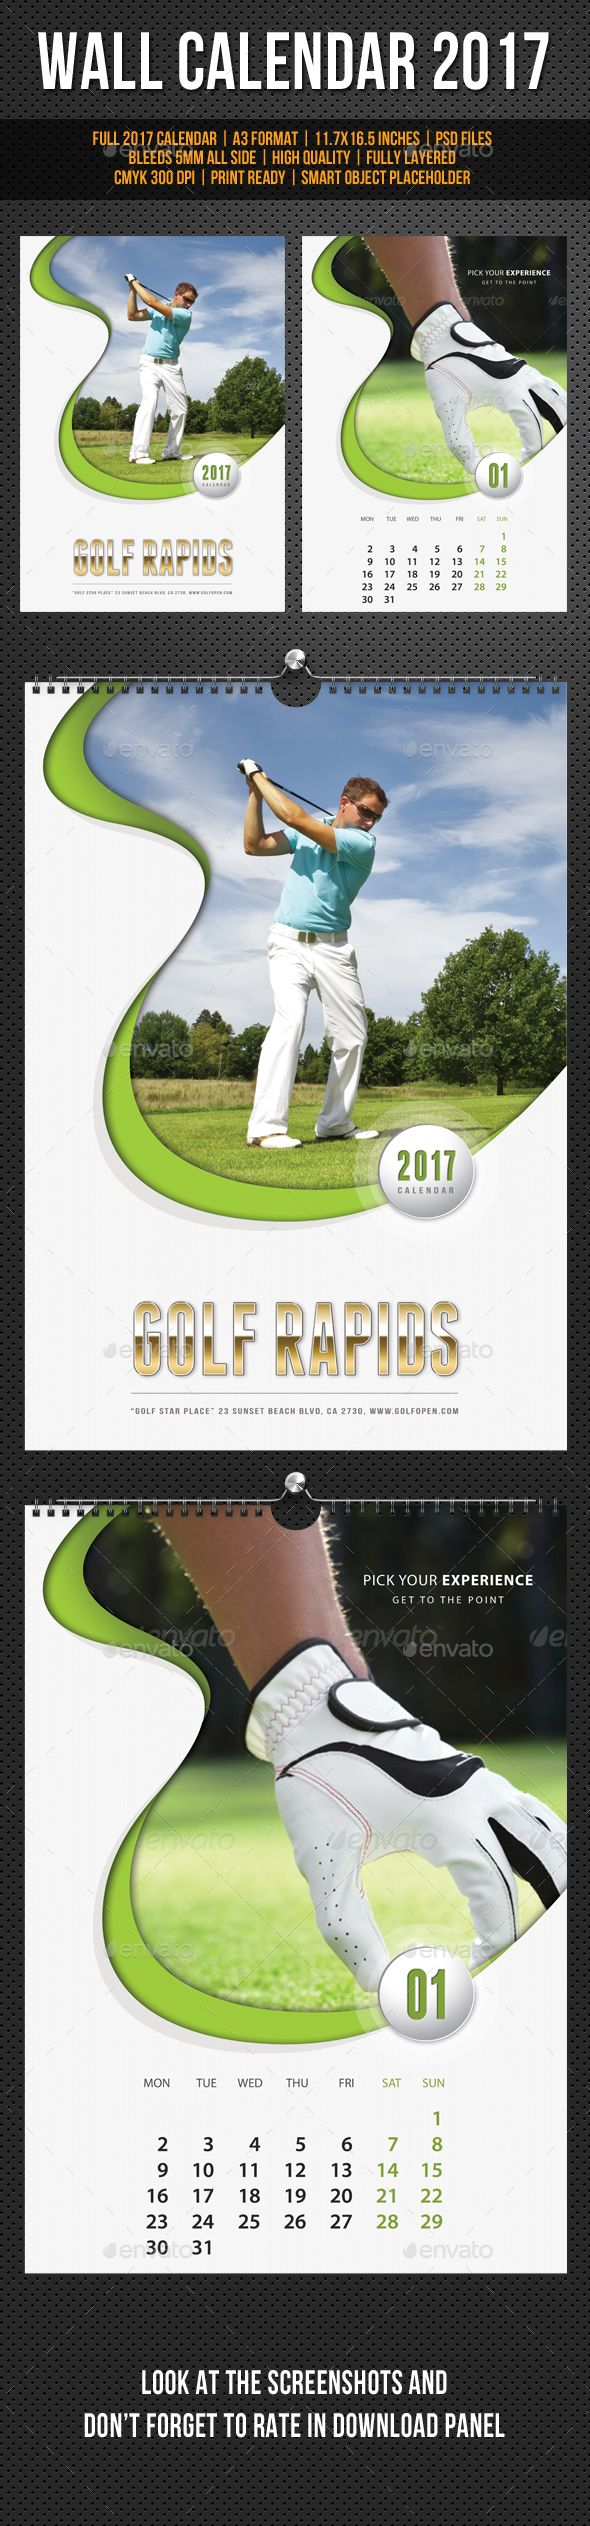 Golf Play Wall Calendar A3 2017 Template PSD. Download here: https://graphicriver.net/item/golf-play-wall-calendar-a3-2017-v02/17037983?ref=ksioks